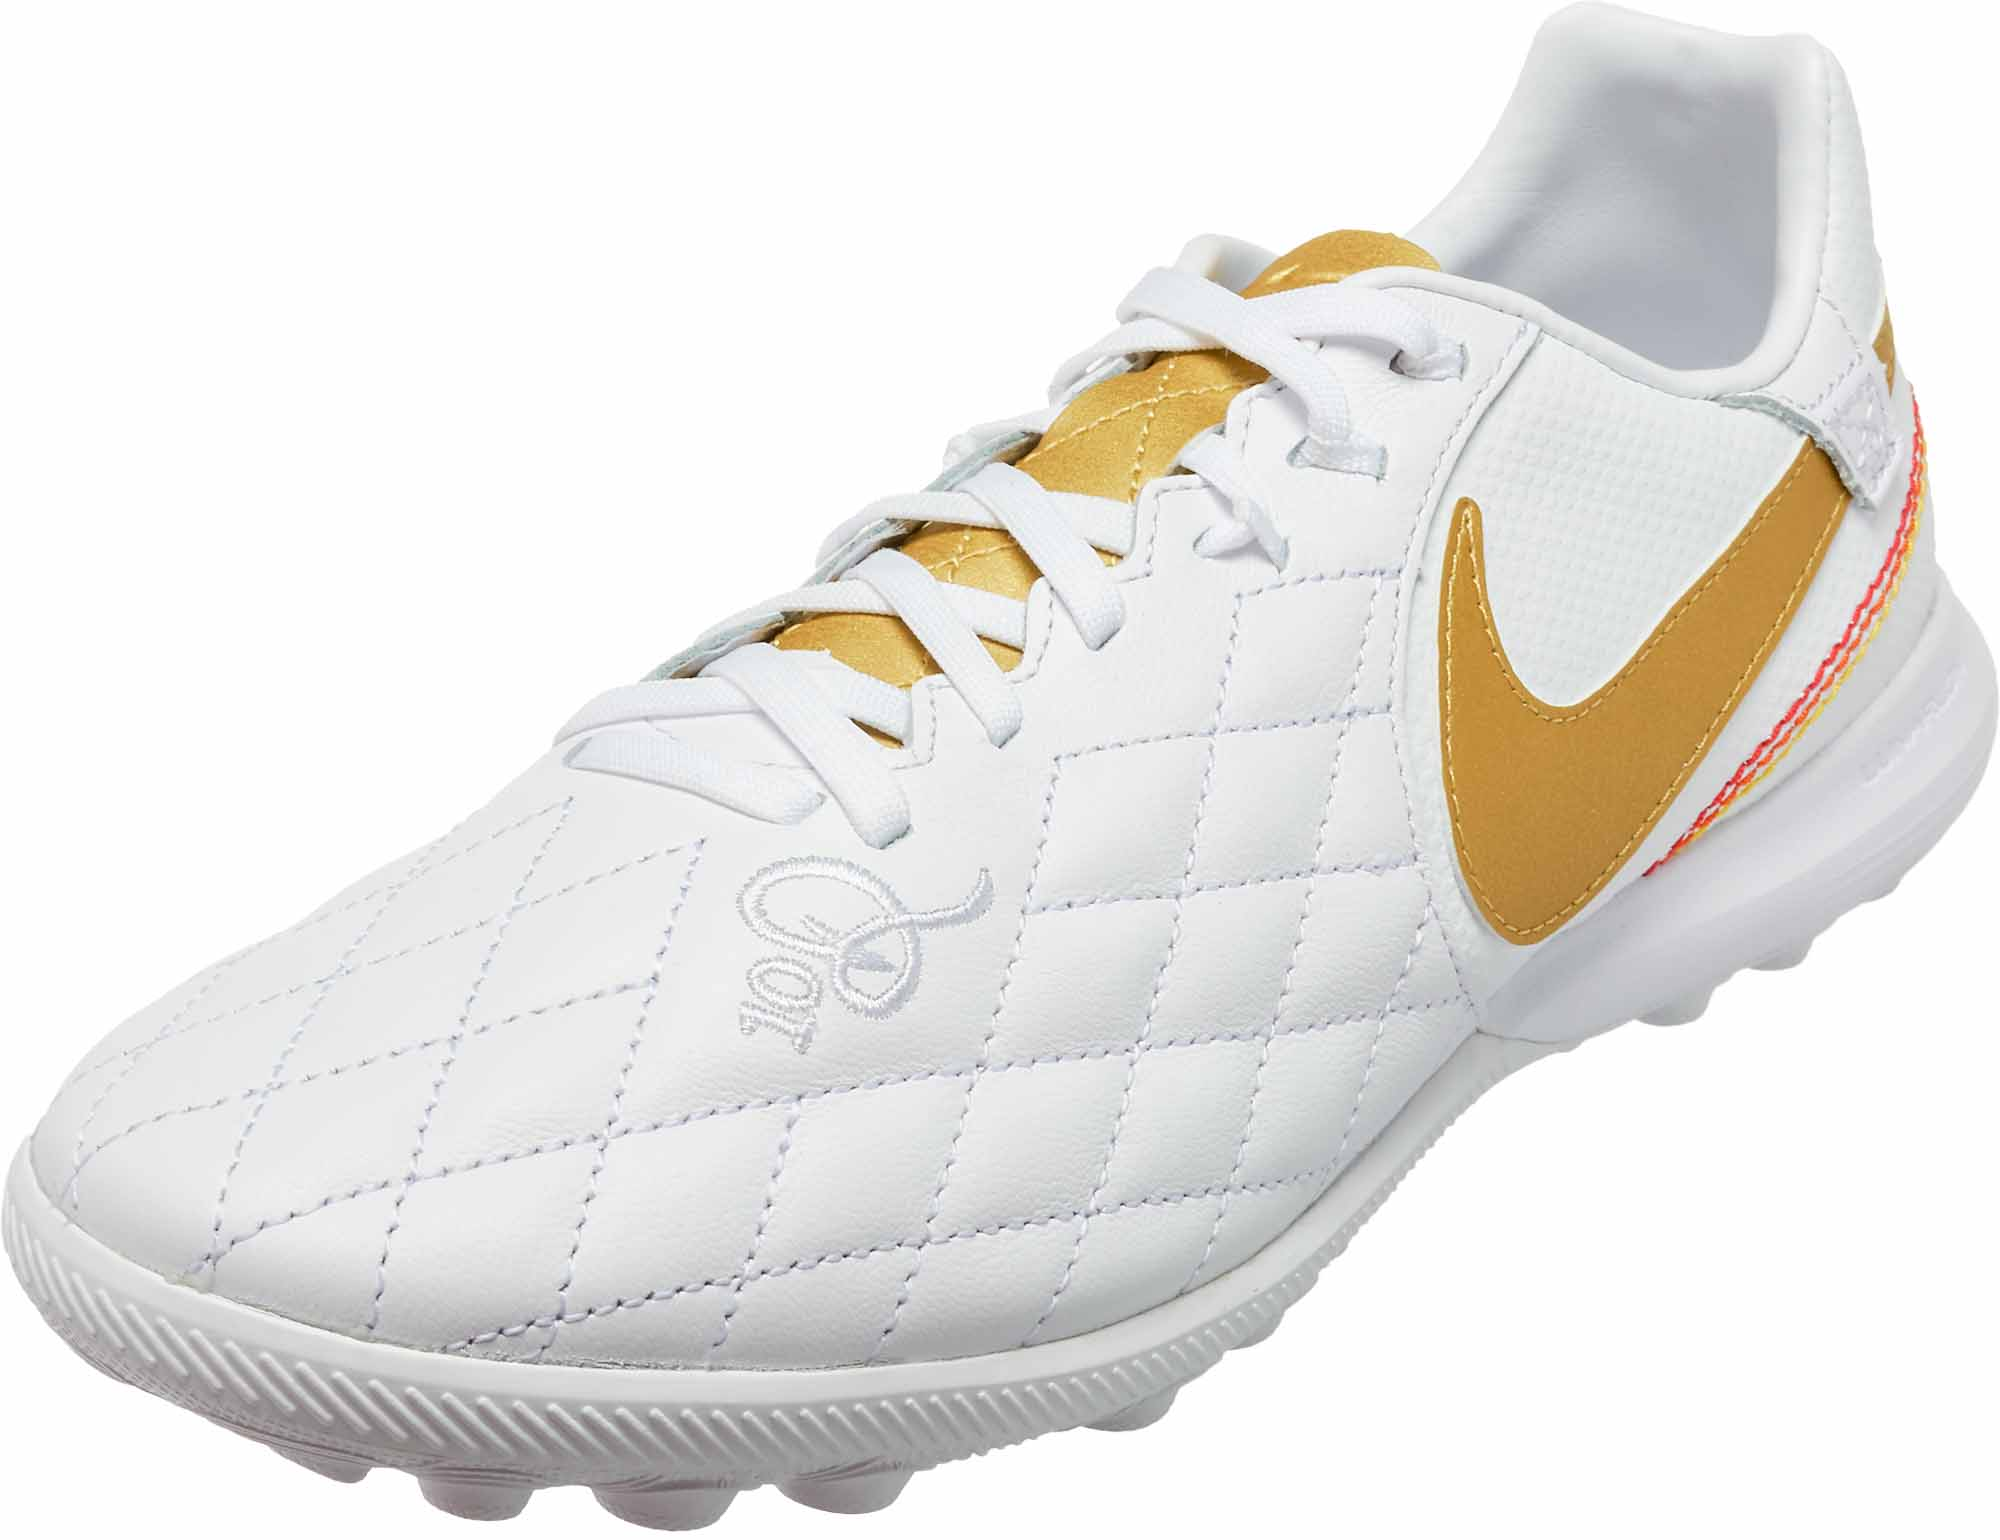 buy online af18e 1dd79 Nike Lunar LegendX 7 Pro TF - 10R - White/Metallic Gold ...